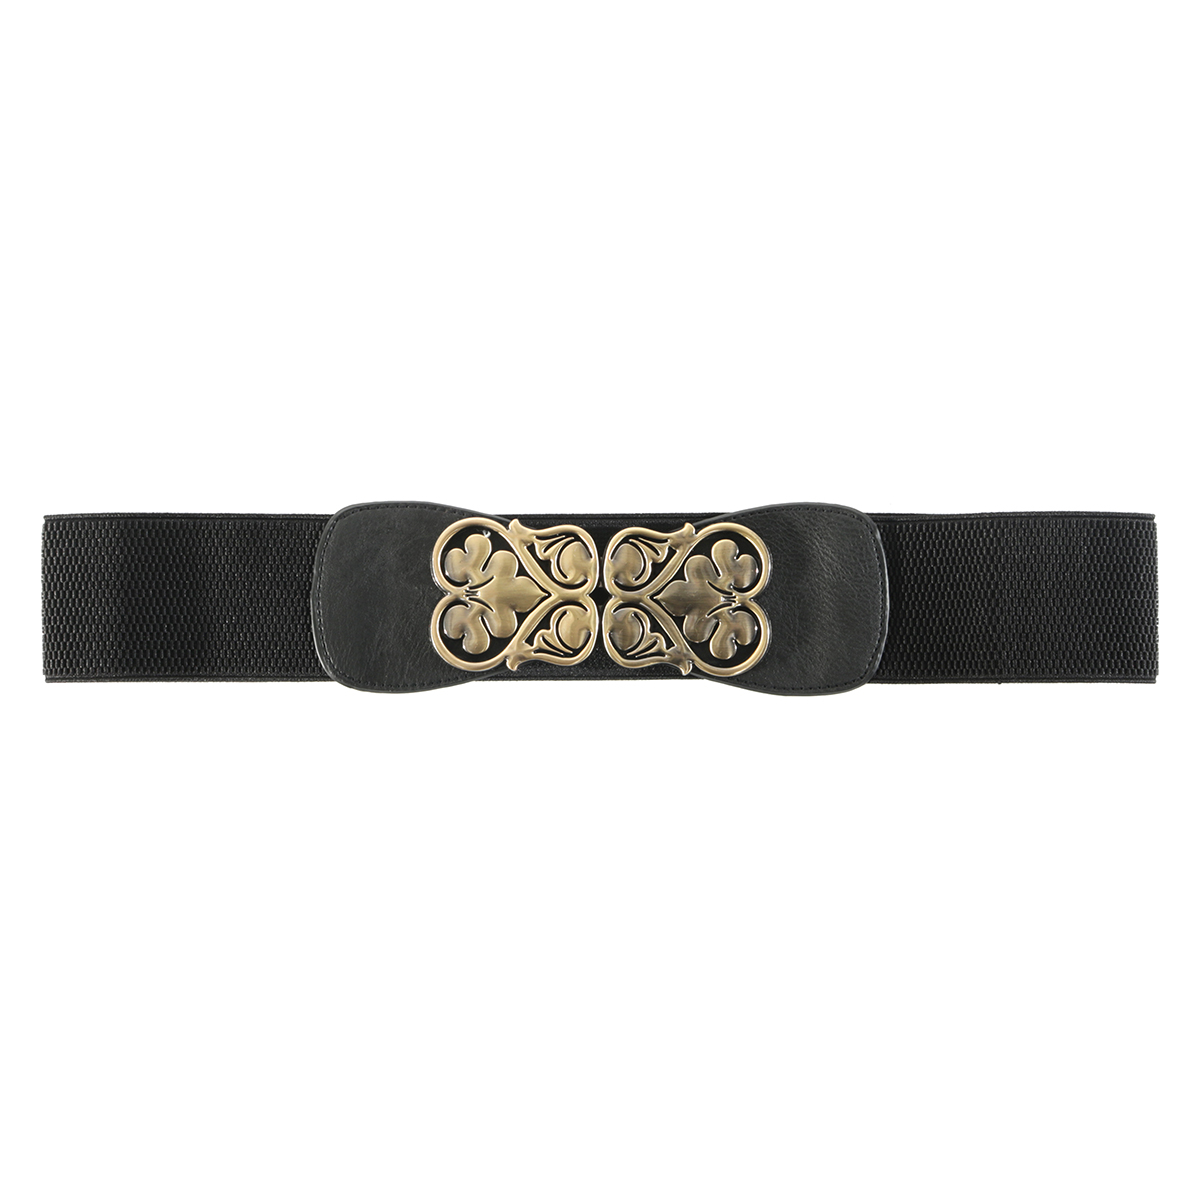 "BLK 31"" HEART BUCKLE BELT"